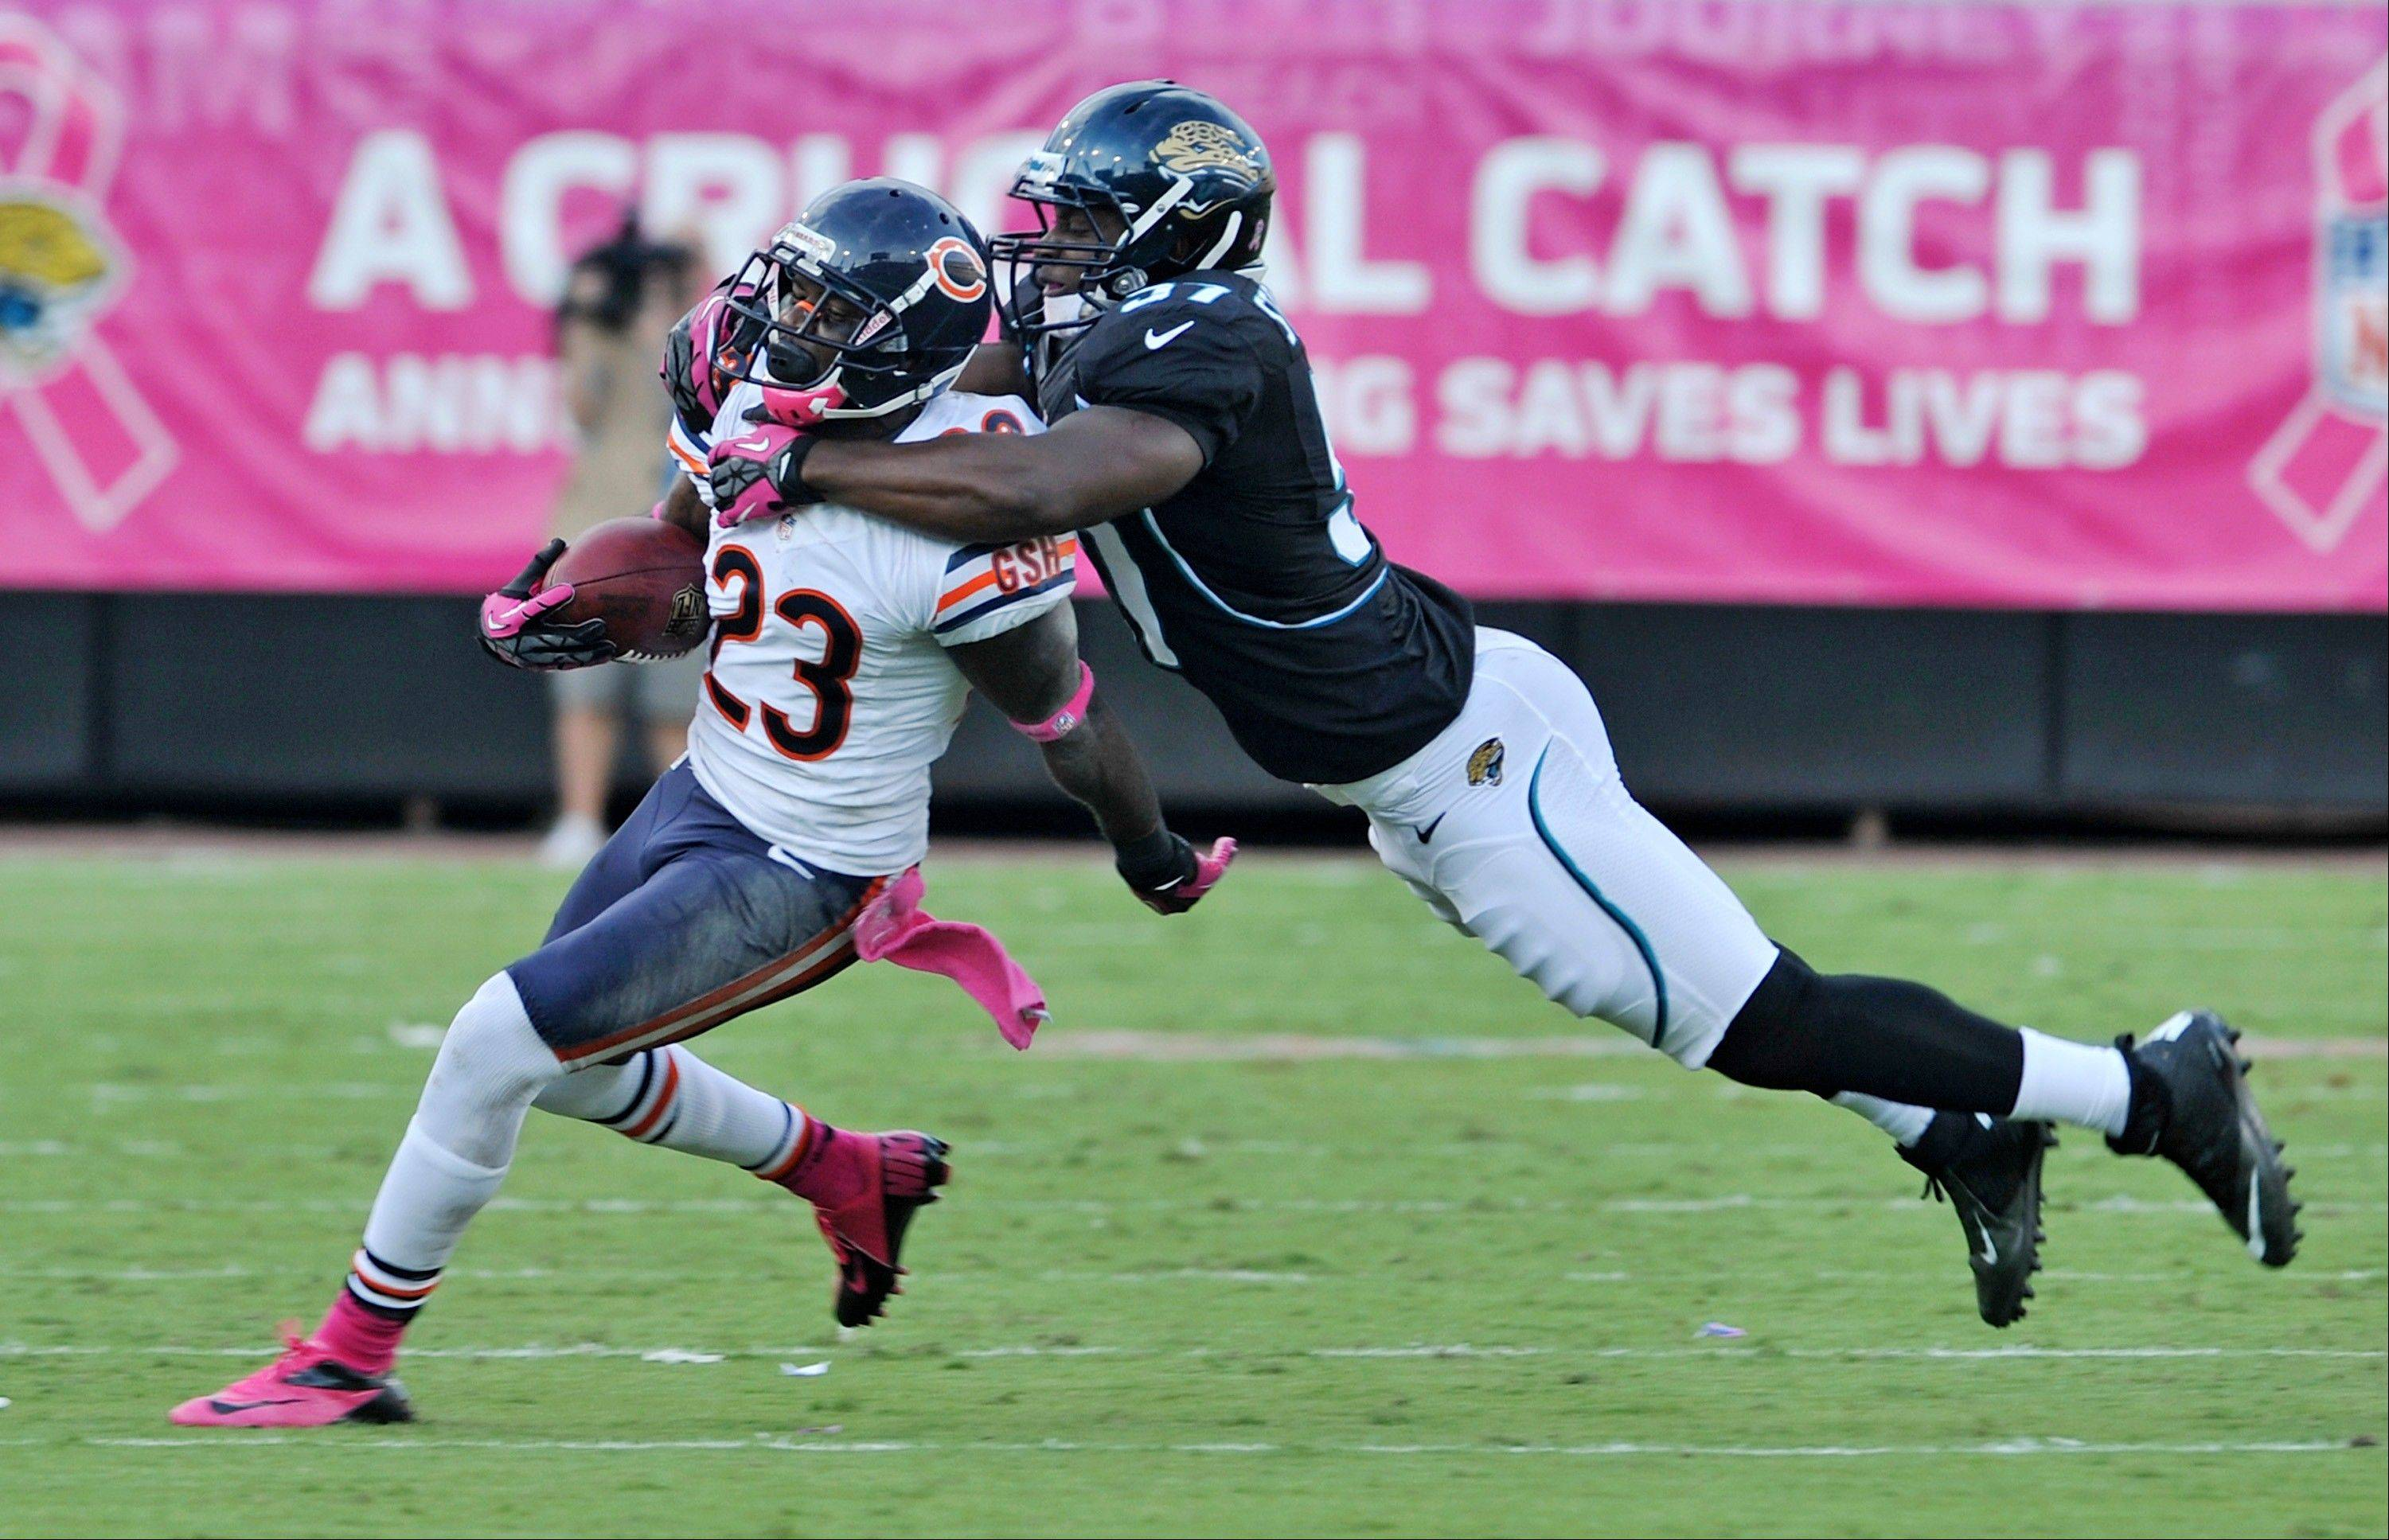 Chicago Bears wide receiver Devin Hester is brought down by Jacksonville Jaguars linebacker Julian Stanford after a reception during the second half, Sunday, in Jacksonville, Fla.